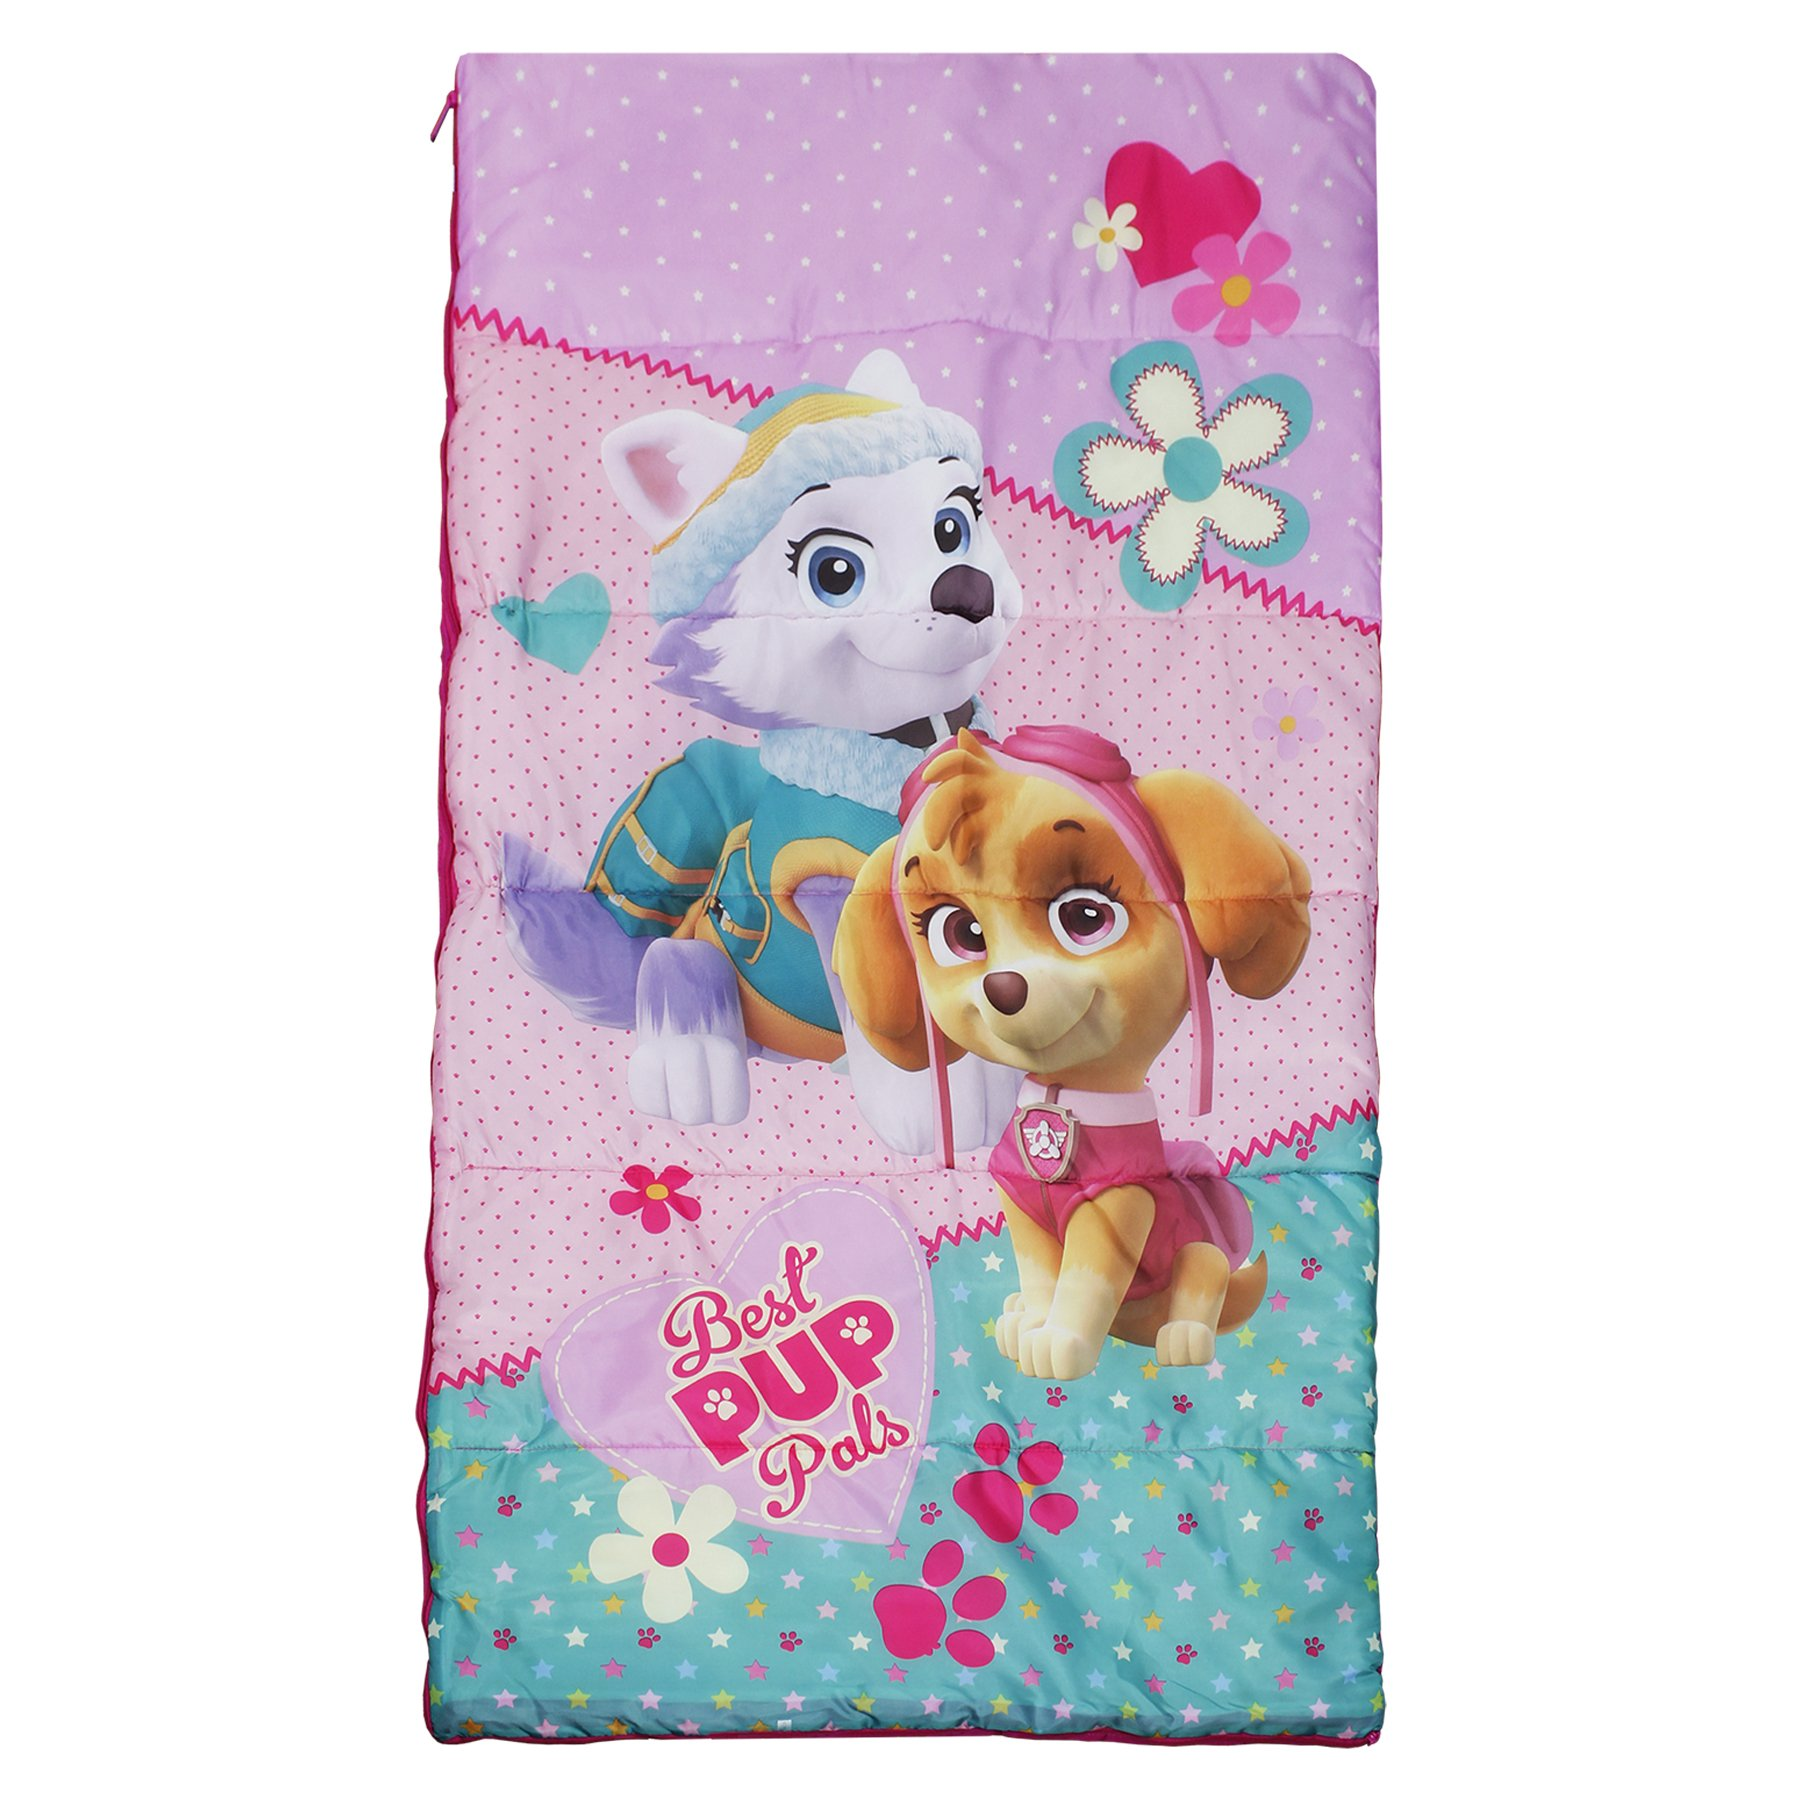 Paw Patrol Girls Sleeping Bag with Carry Sling by Paw Patrol (Image #2)